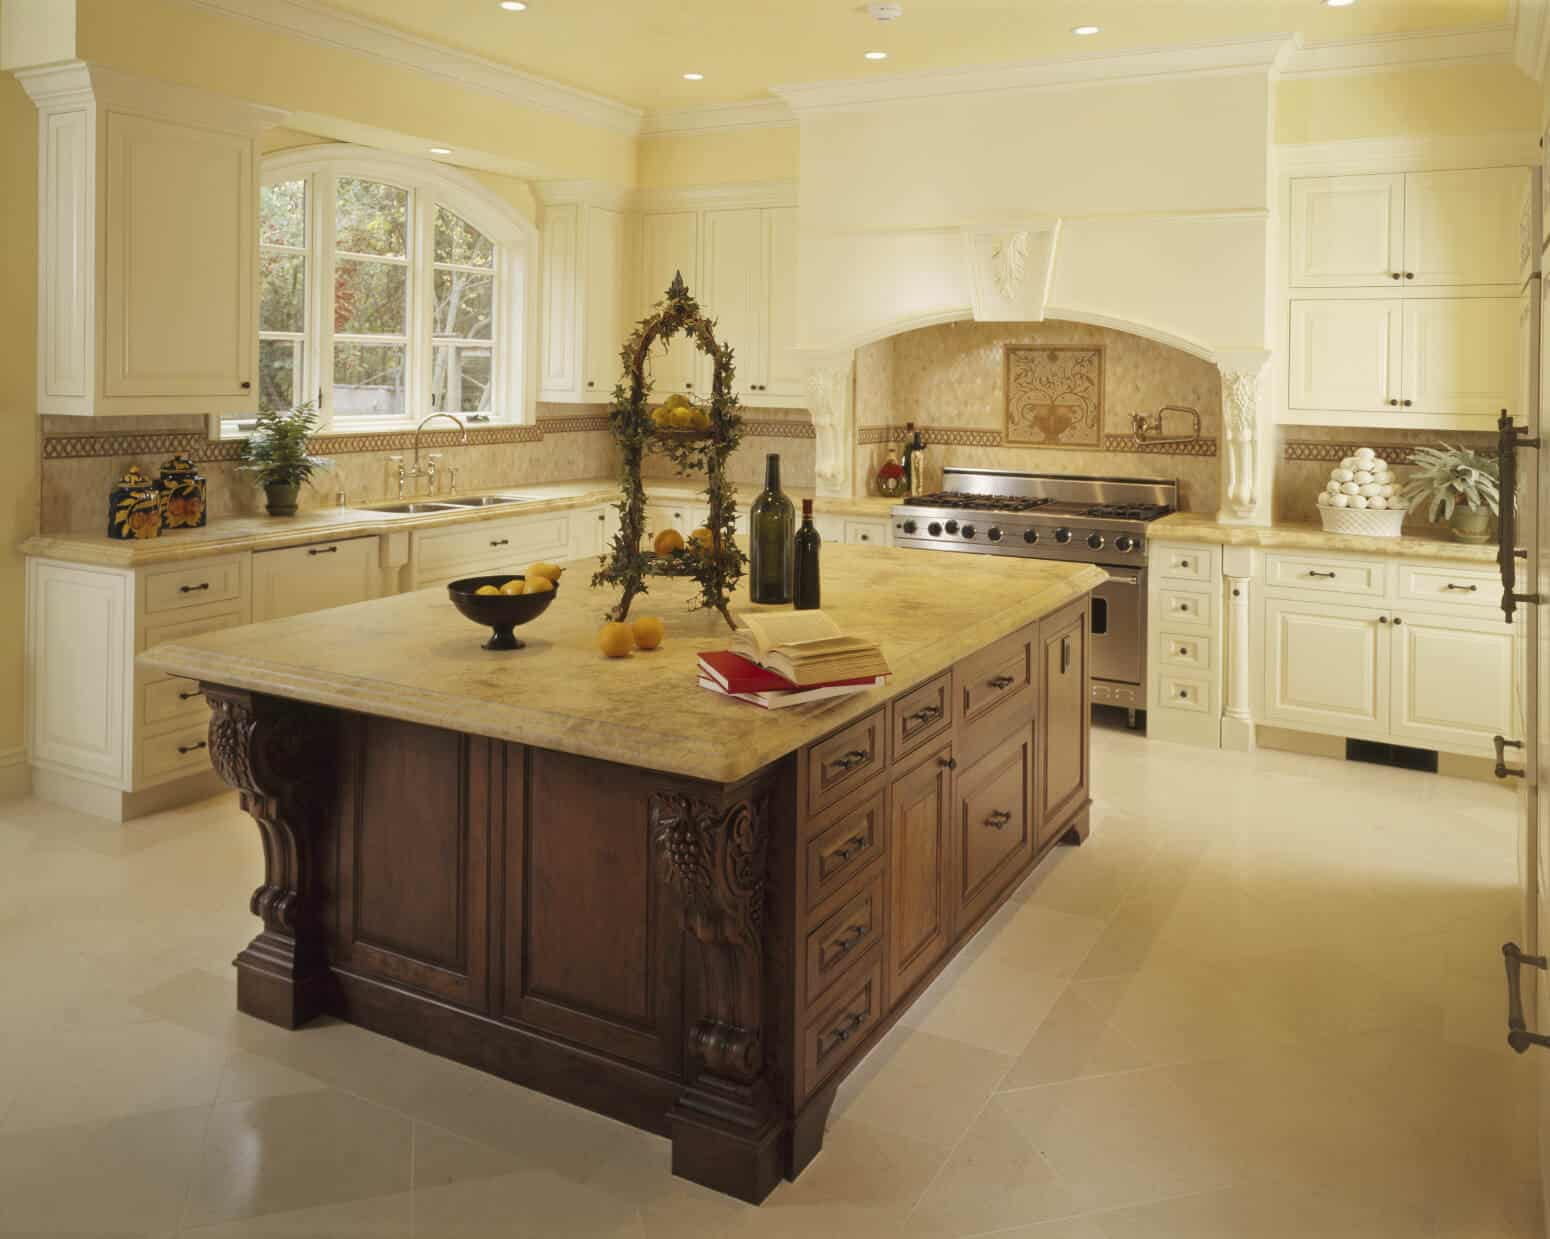 Traditional kitchen with white cabinets, yellow walls, large center island and tile flooring.